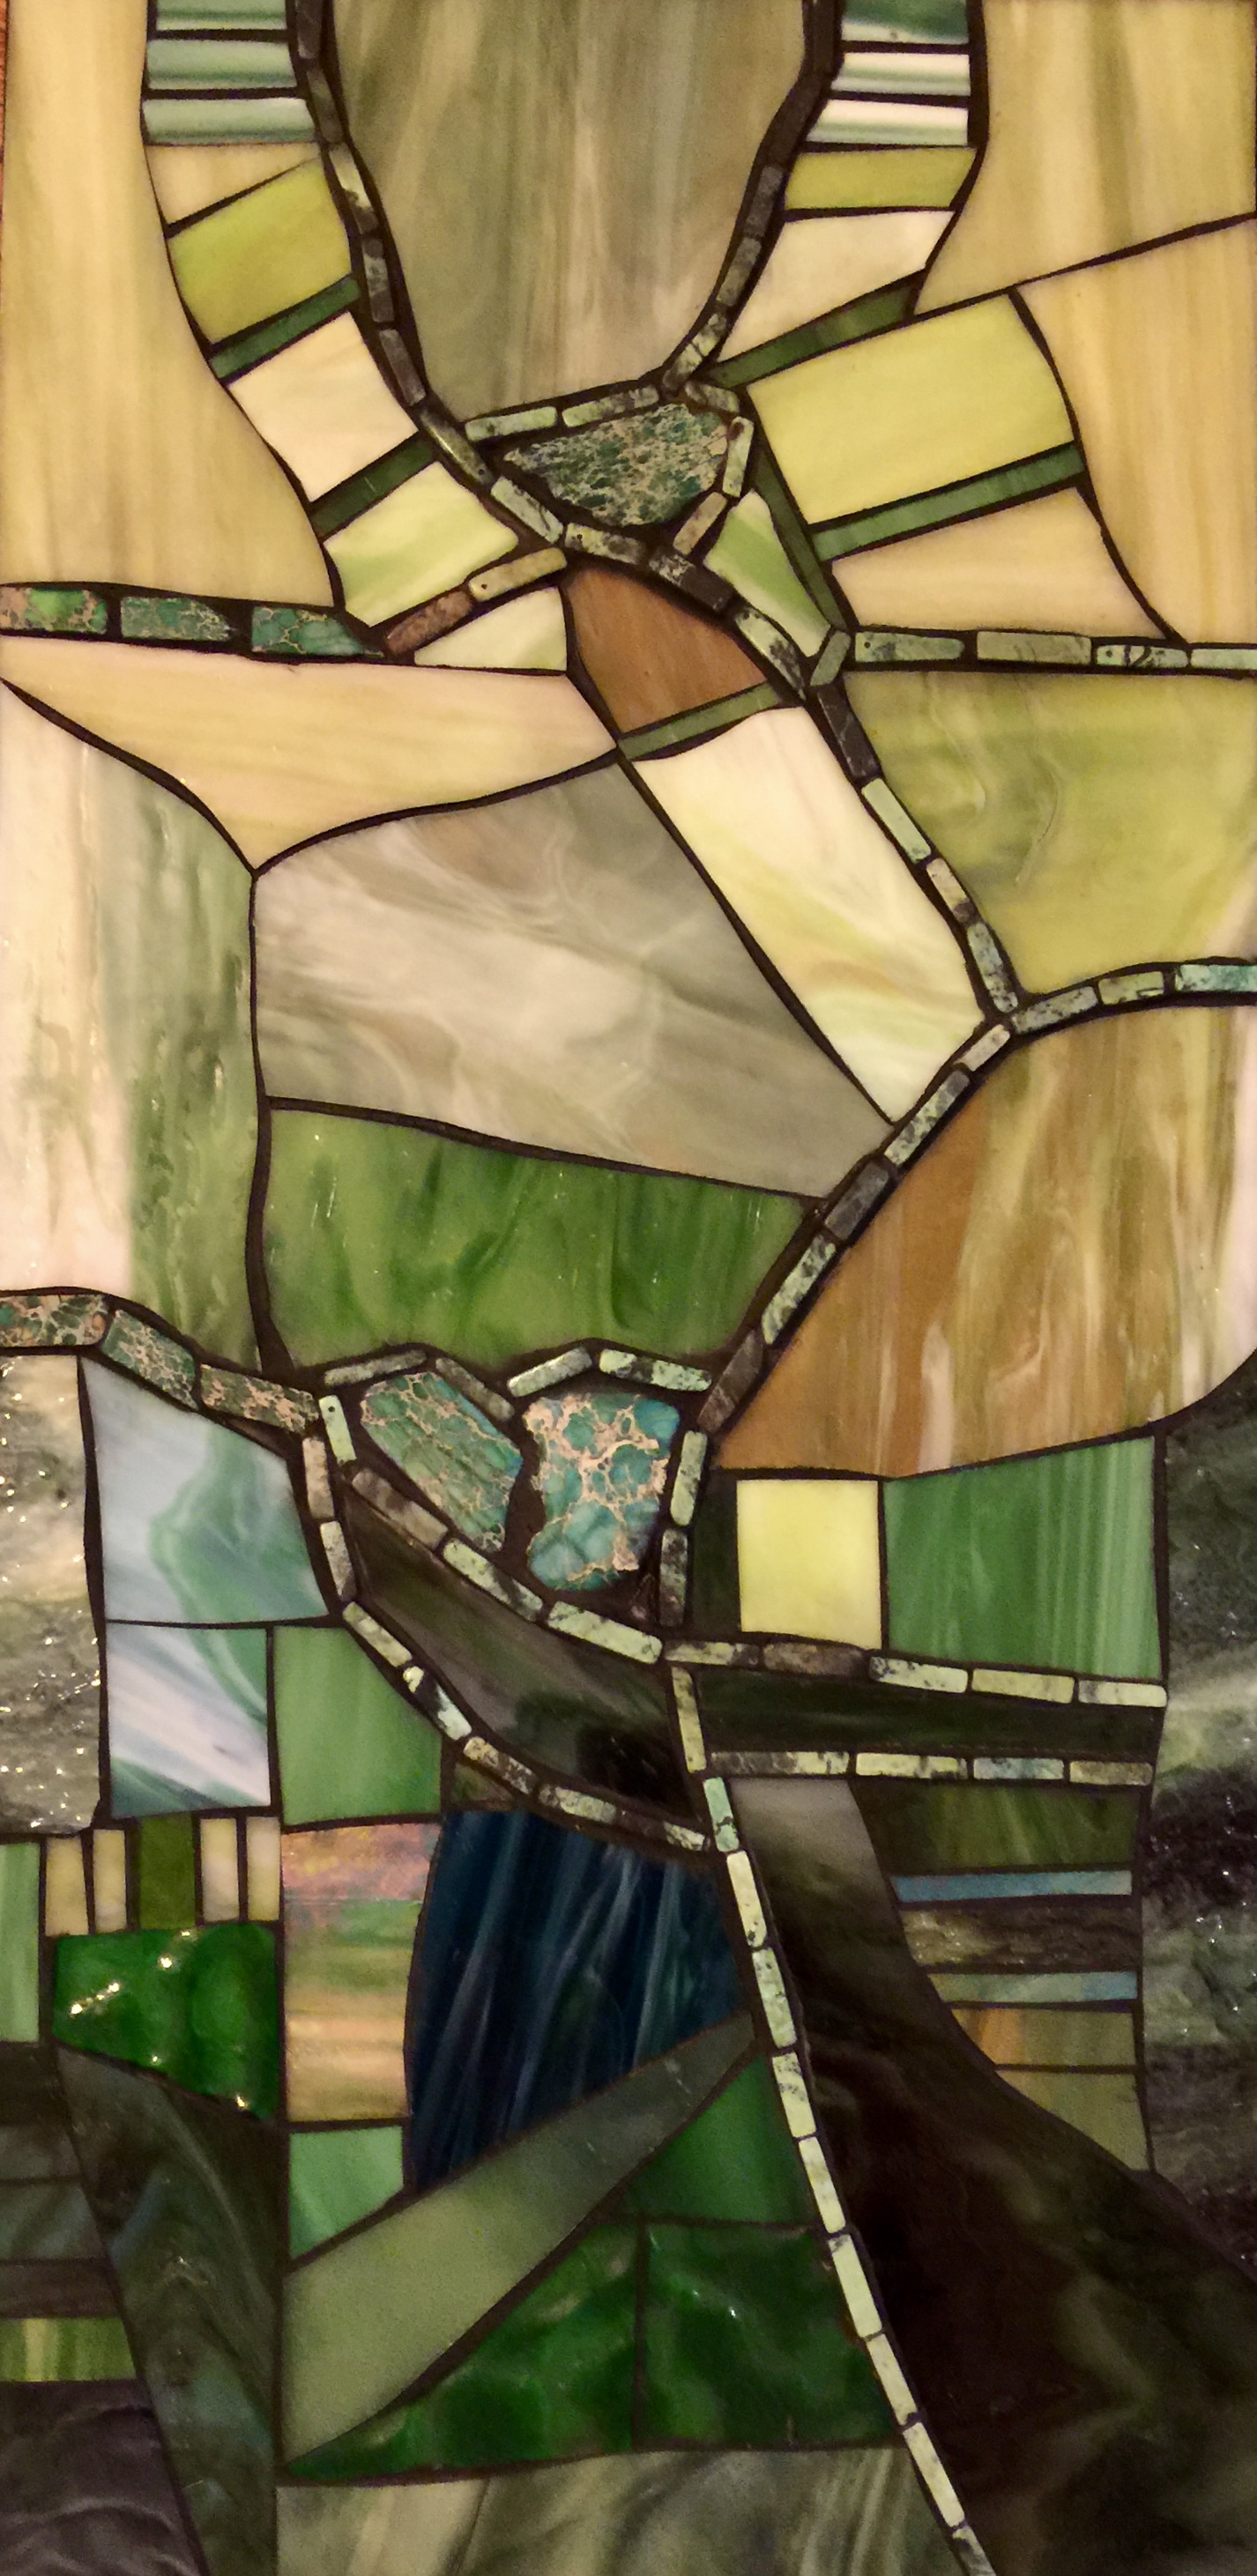 Fly Over - $400